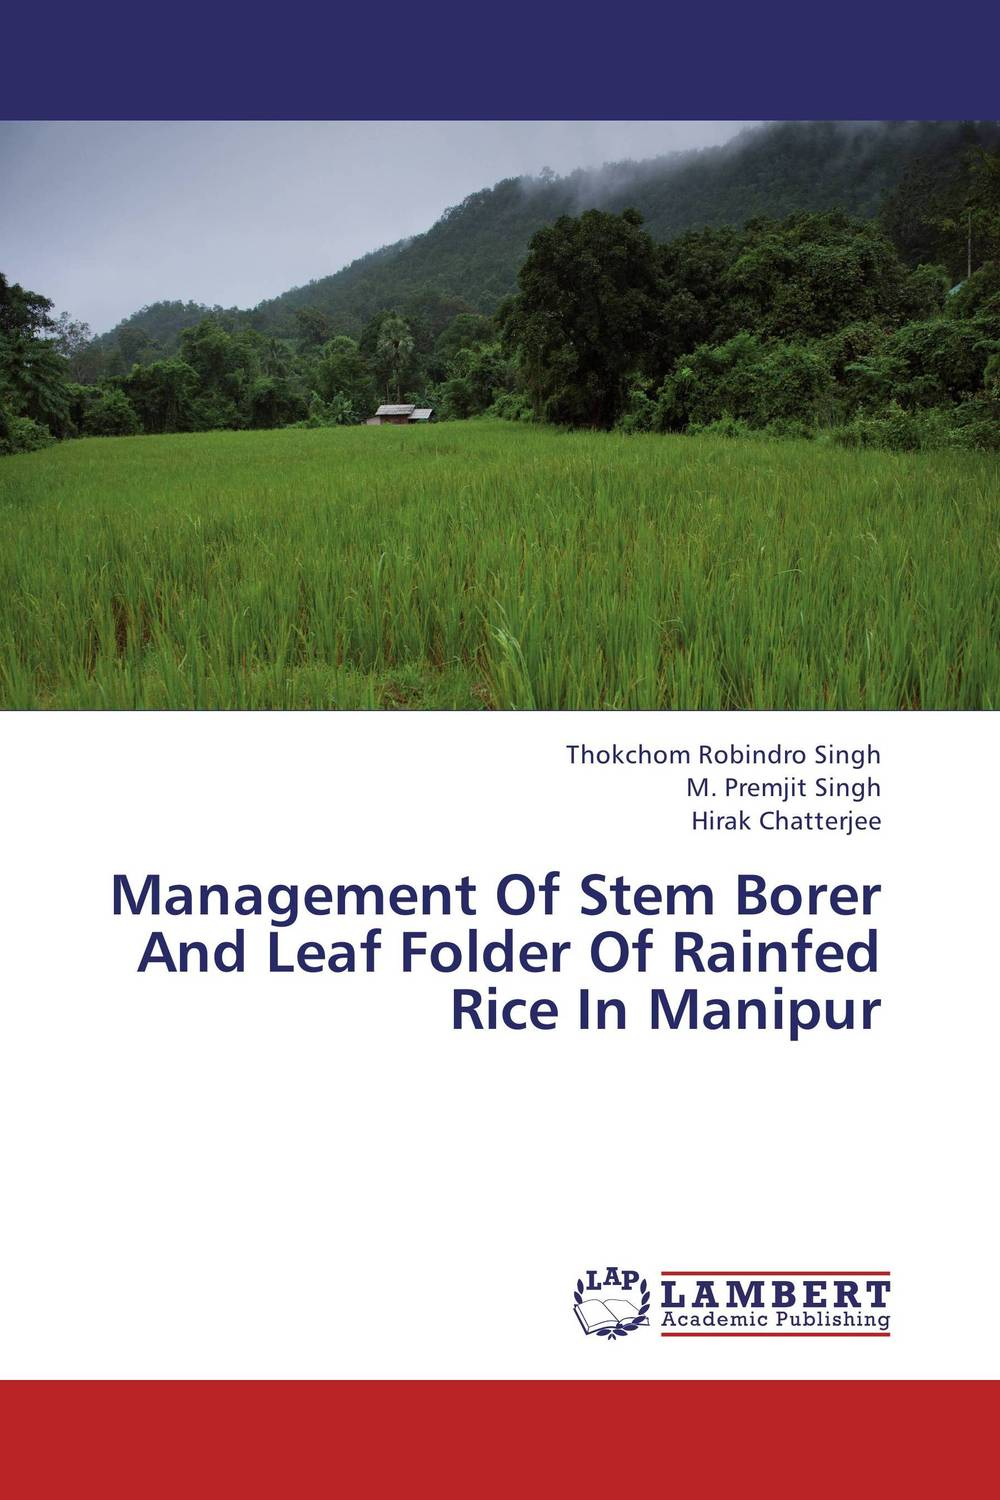 Management Of Stem Borer And Leaf Folder Of Rainfed Rice In Manipur k r k naidu a v ramana and r veeraraghavaiah common vetch management in rice fallow blackgram